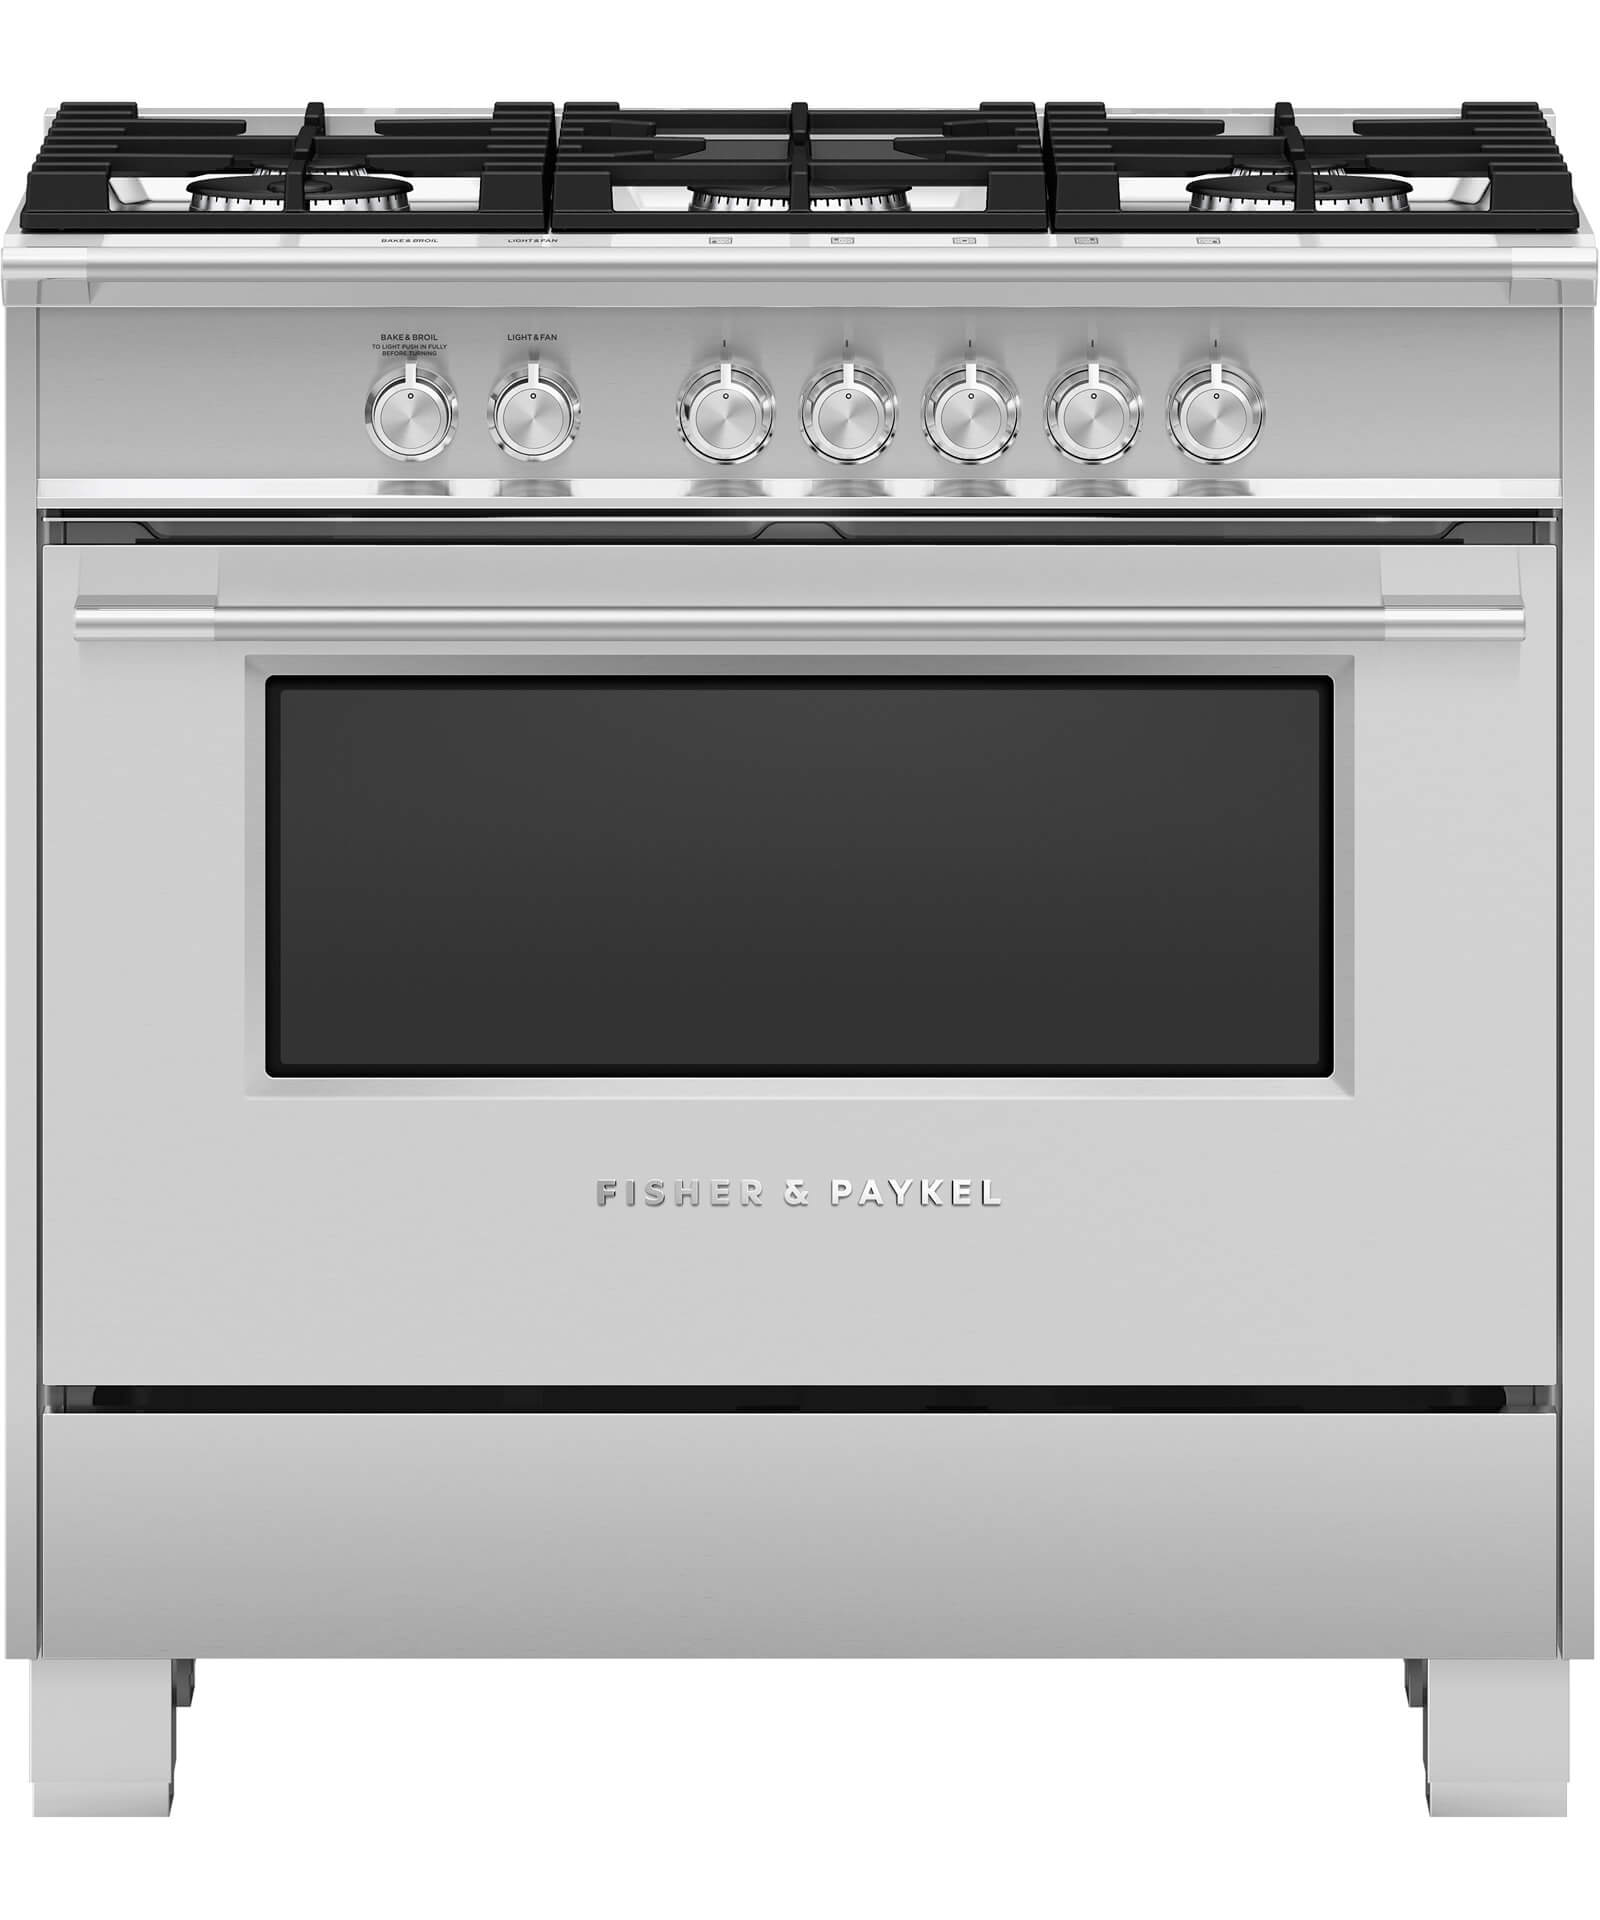 Or36scg4x1 Clic Freestanding Gas Range 36 Fisher